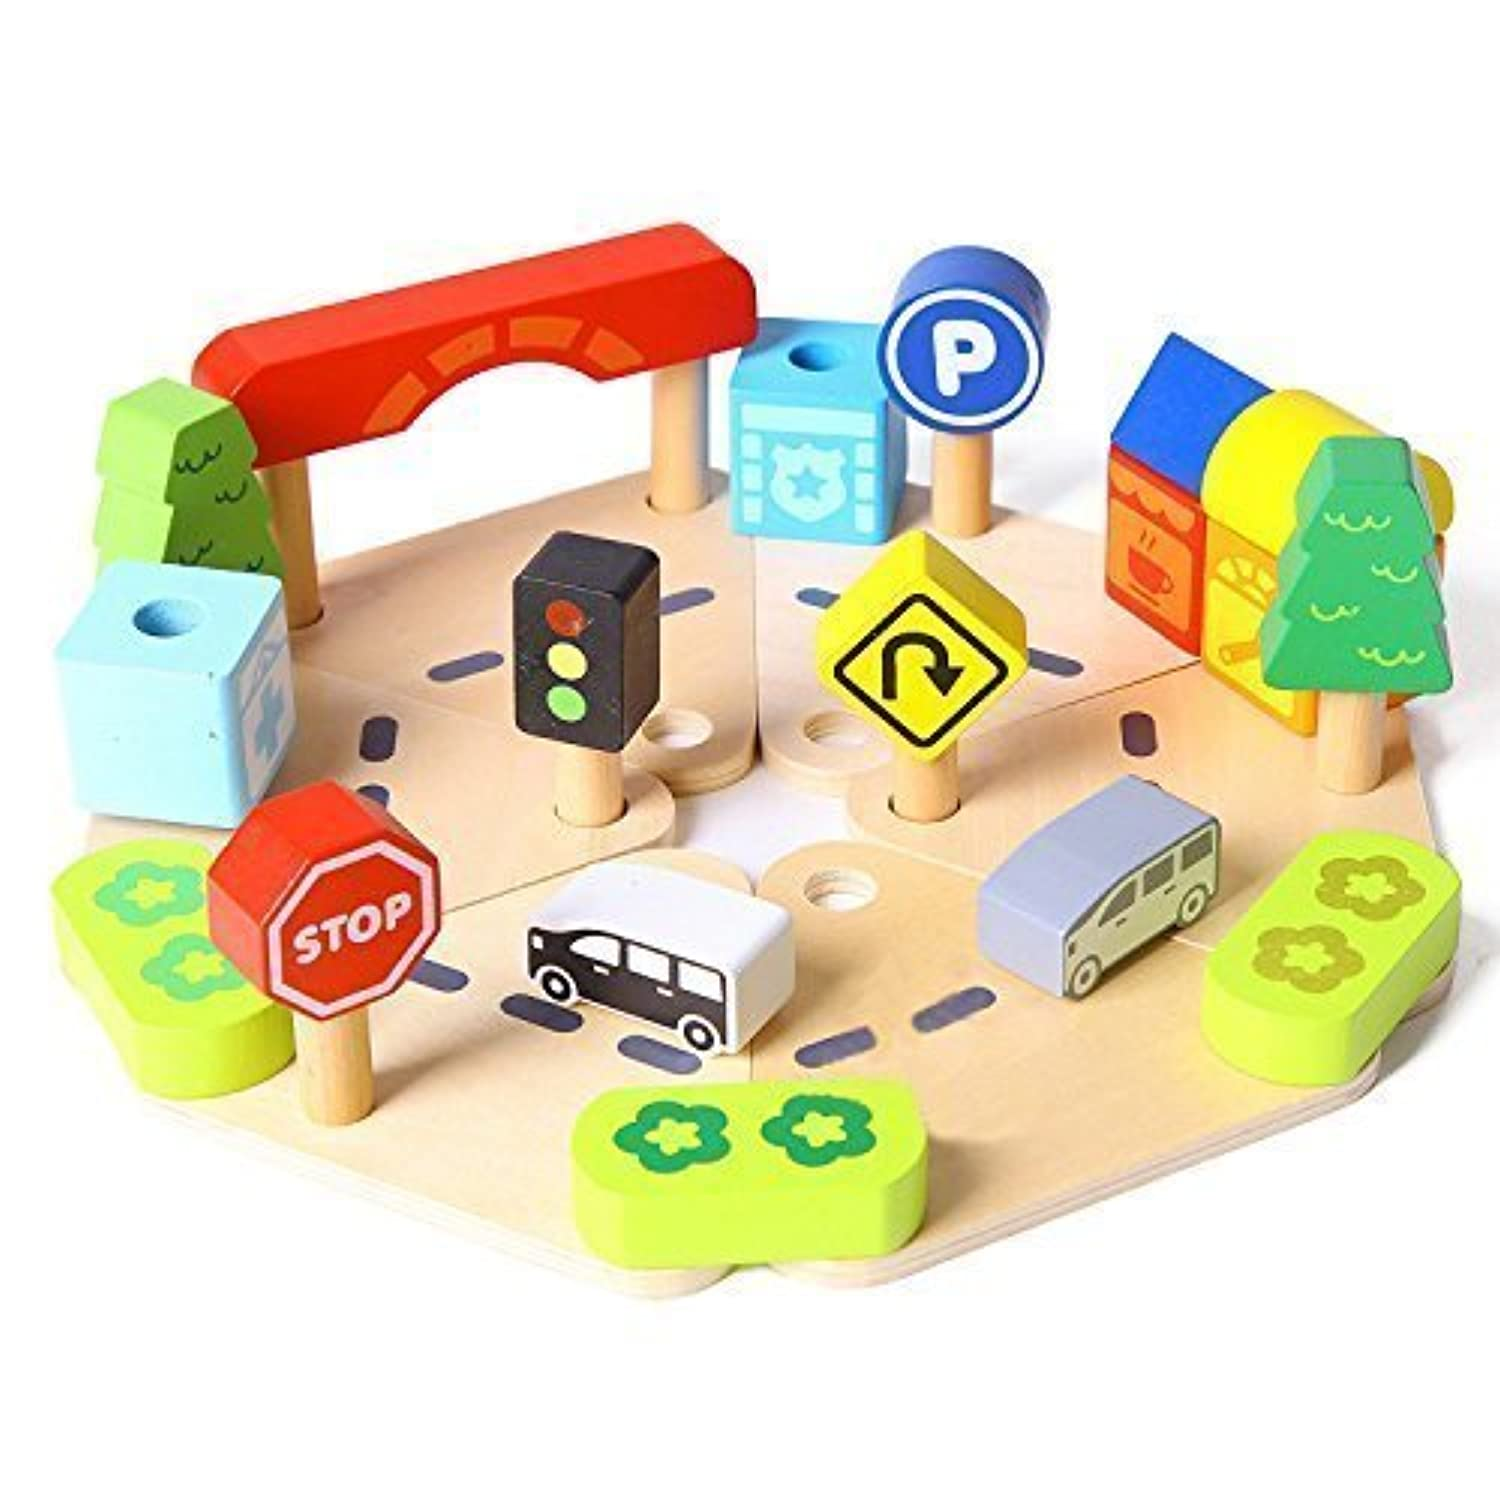 Pretend to Play Toy 24ピース木製City Road Signs Playセットwith Cars木とバスToy Town and Country